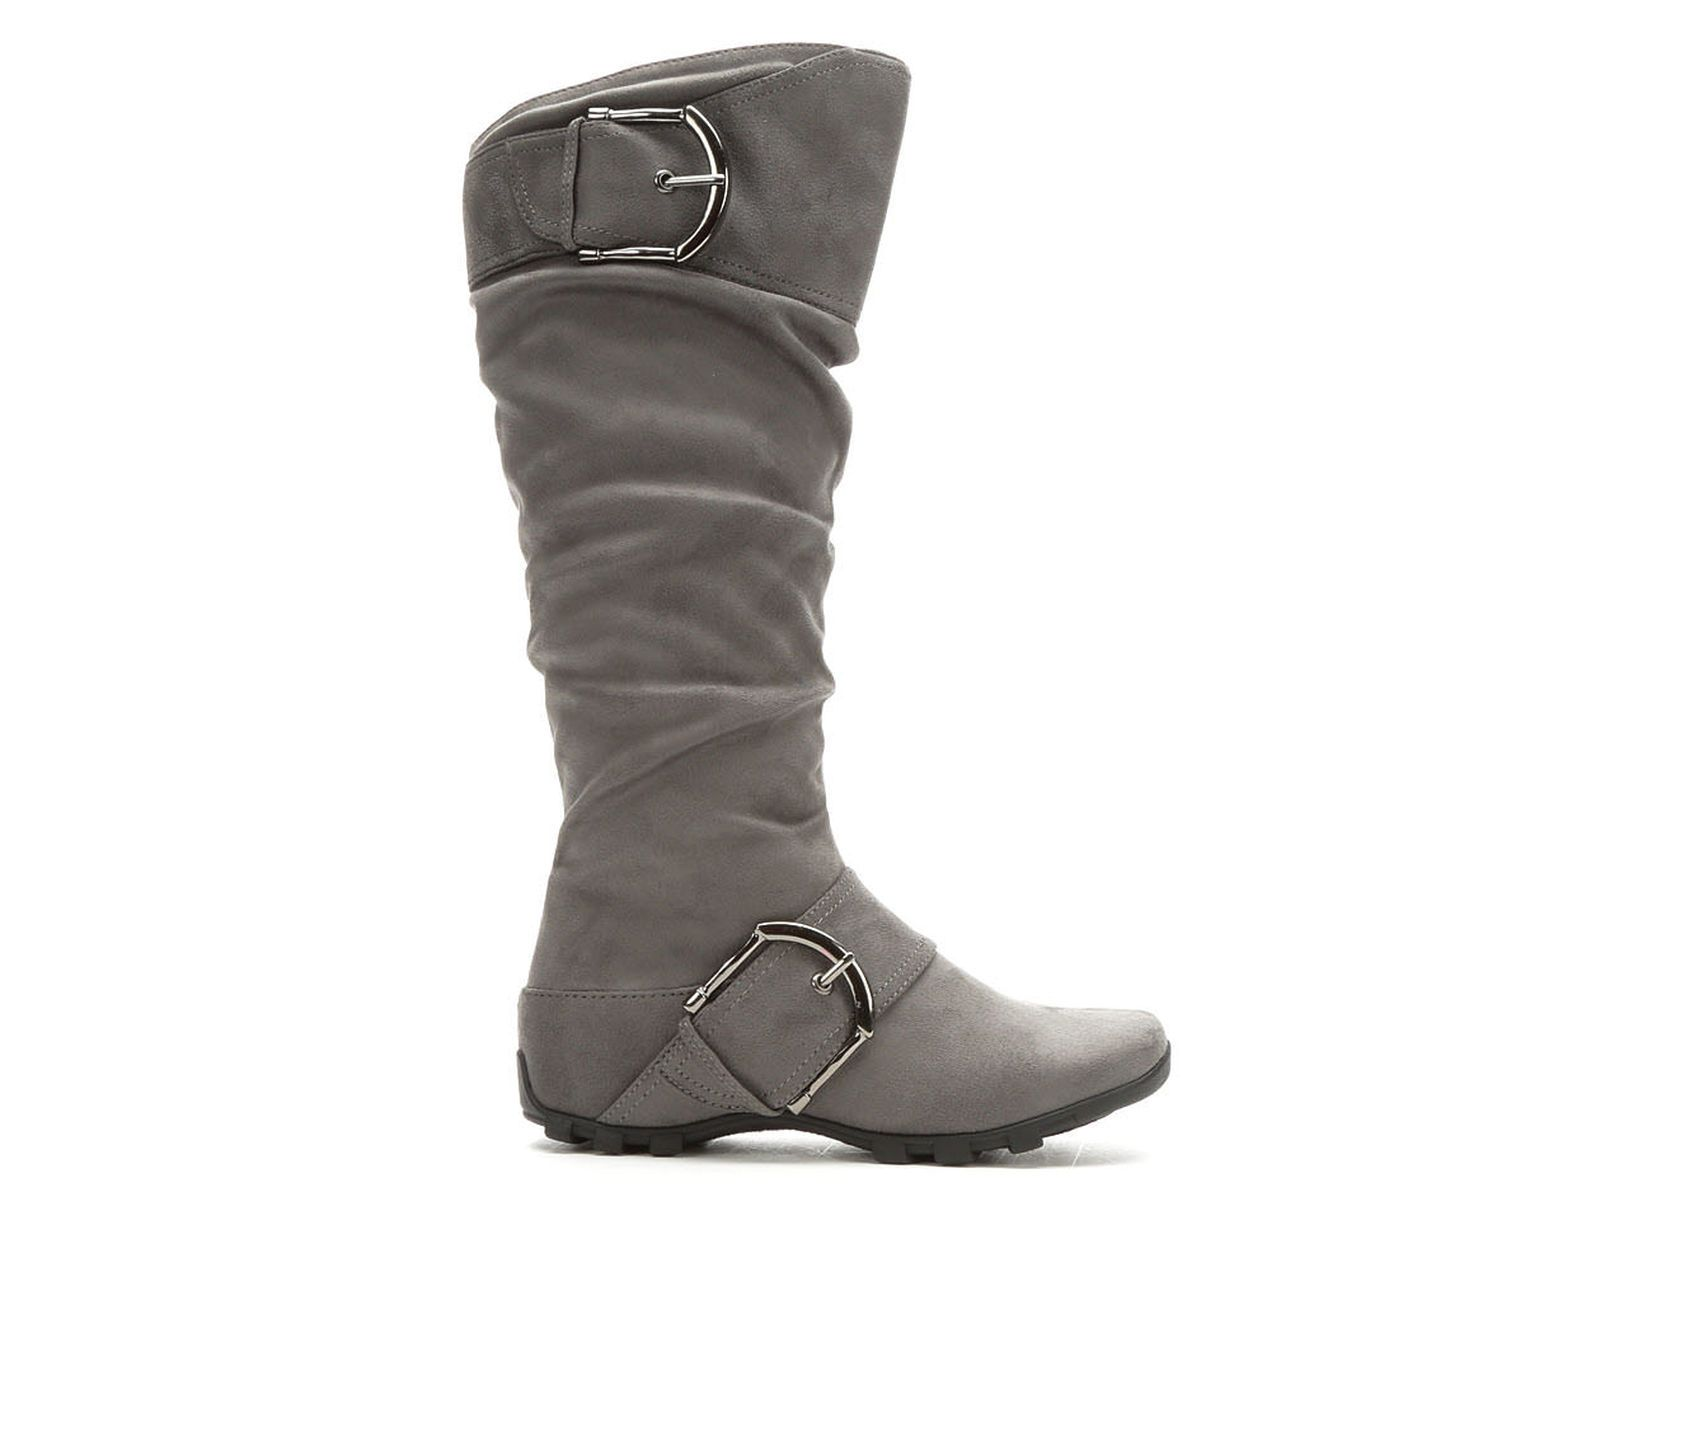 43ad39b8912d Discover ideas about Shoe Carnival. Women s Solanz Grammercy Wide Width  Wide Calf Riding Boots